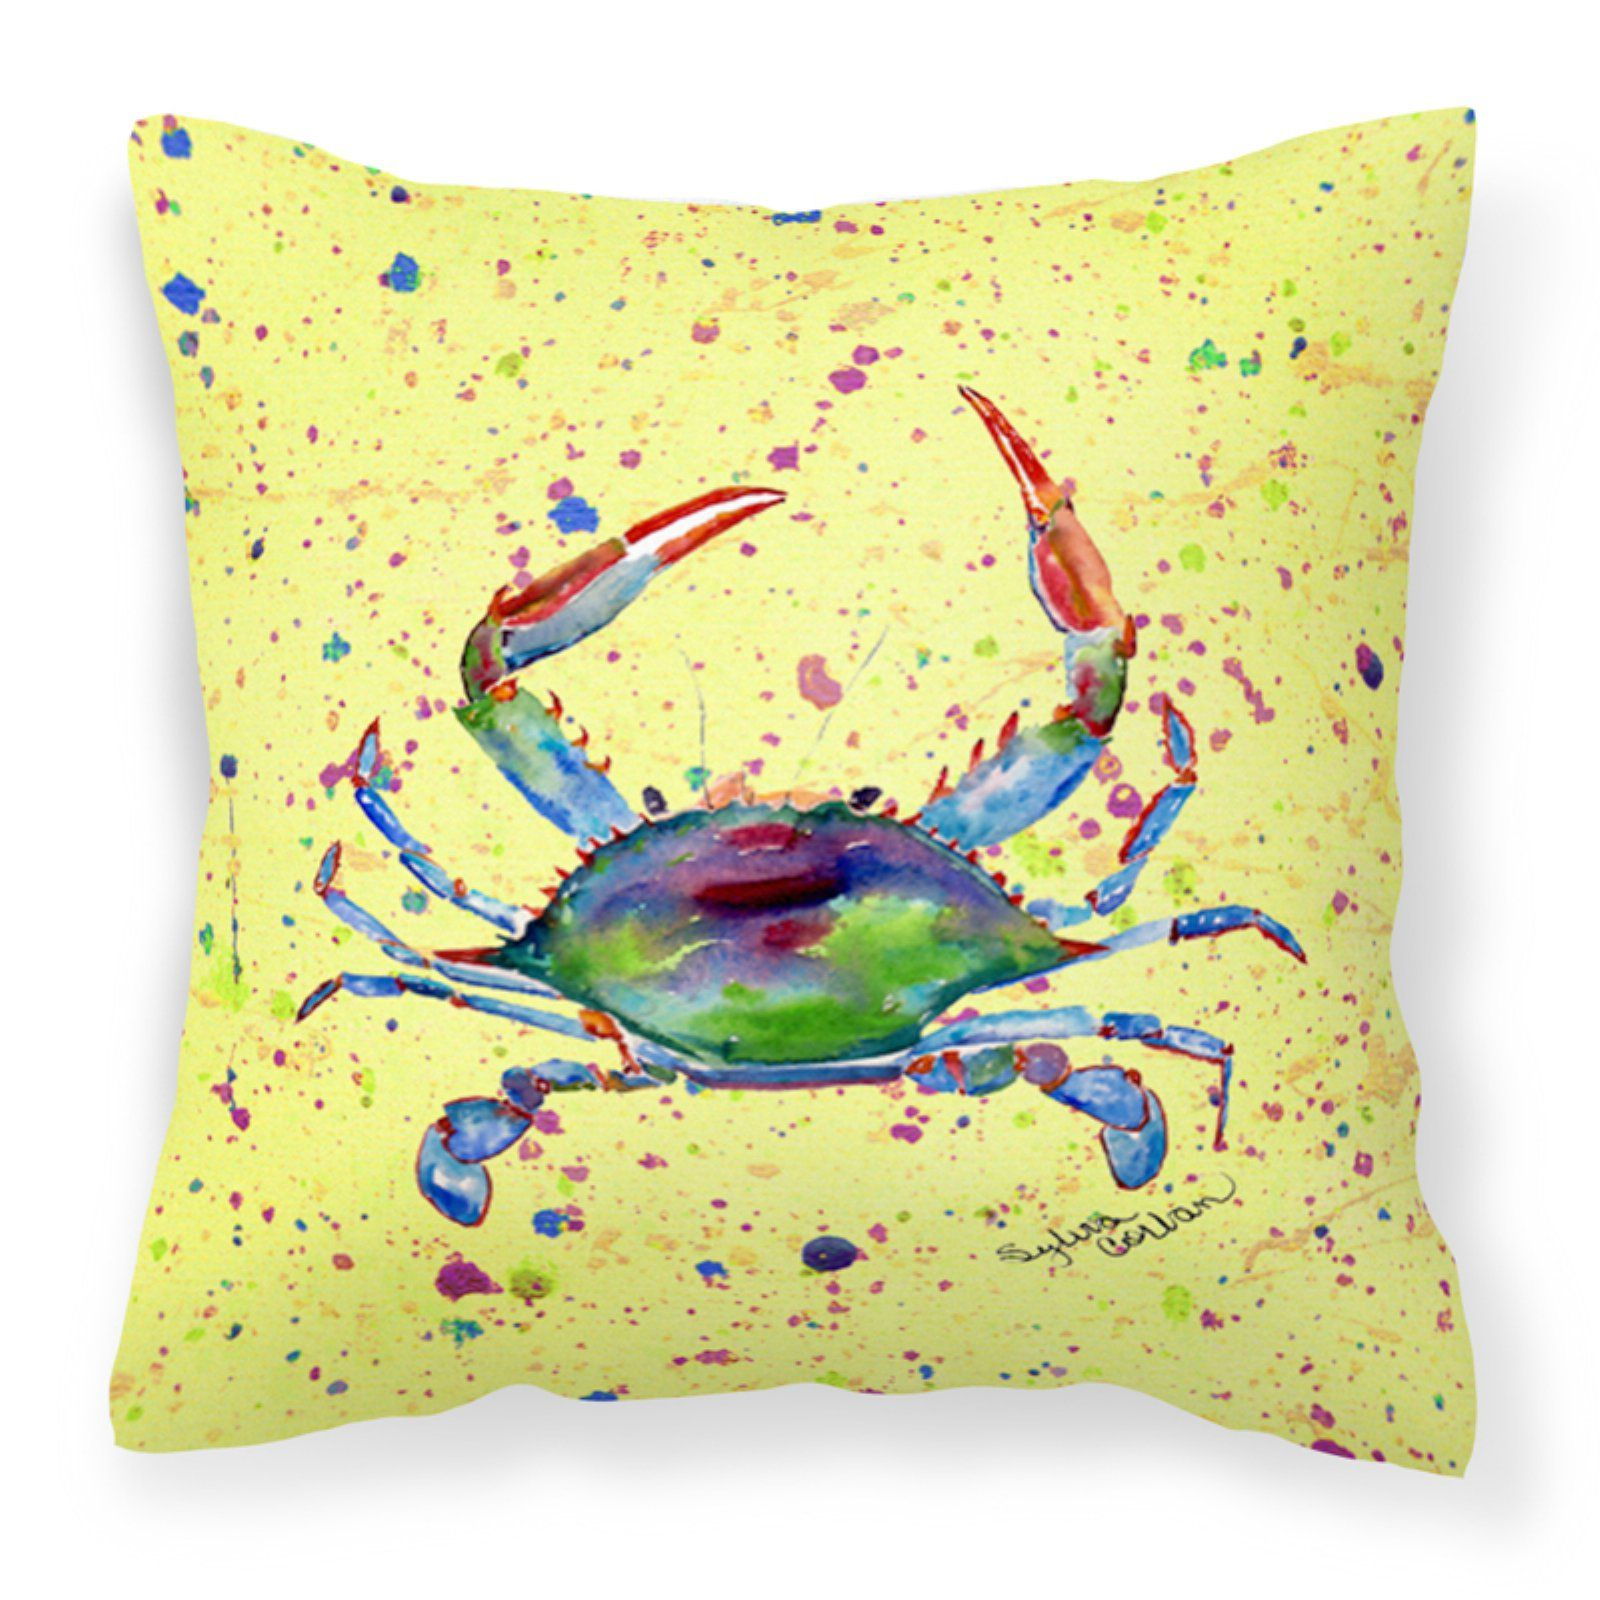 Carolines Treasures Watercolor Crab on Speckled Ground Square Outdoor Pillow Yellow